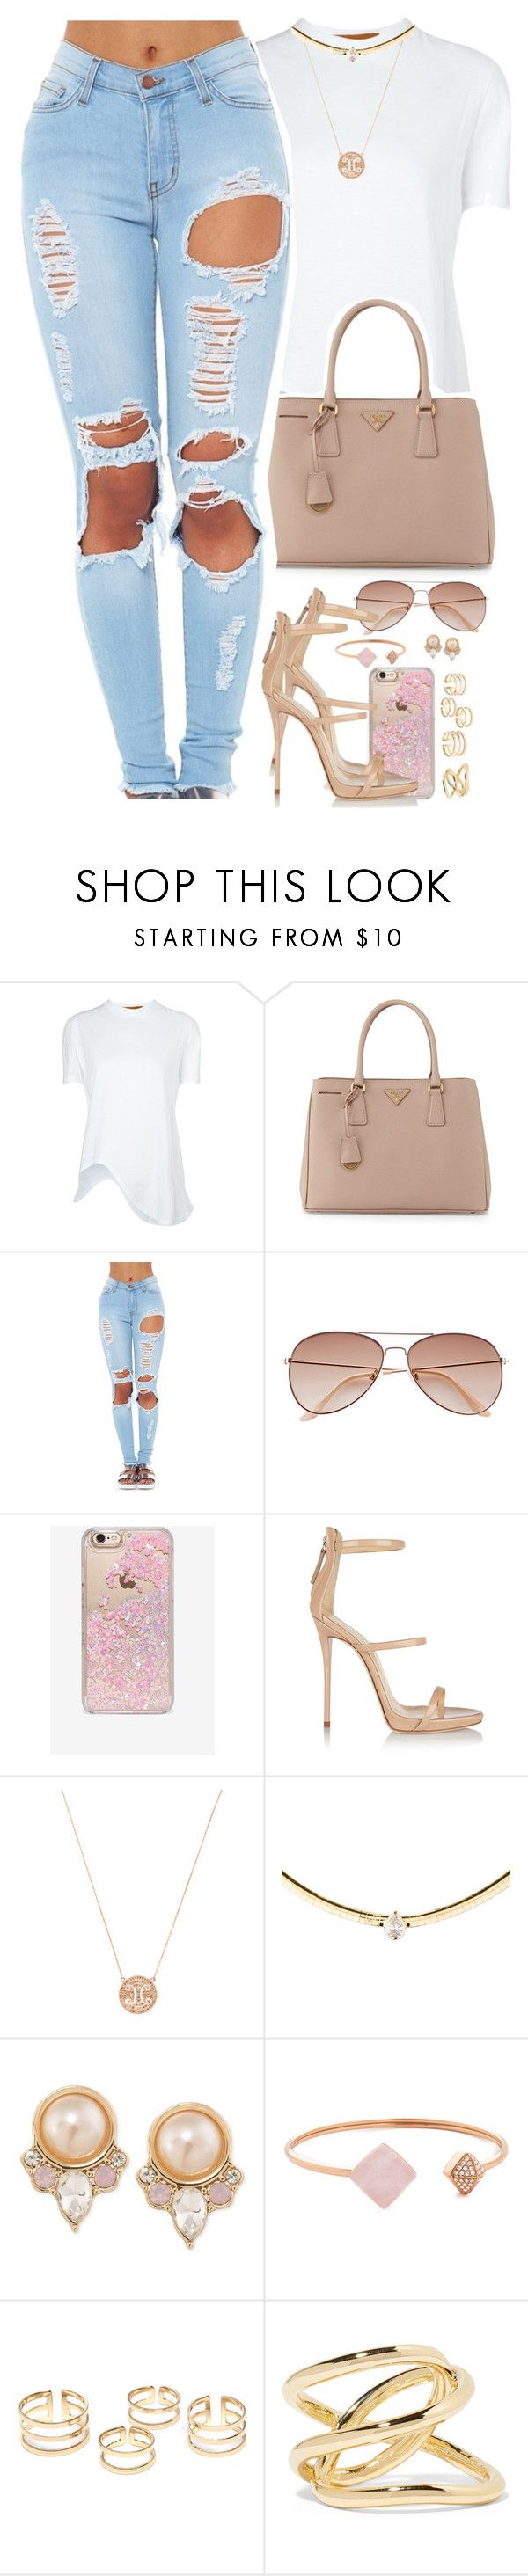 """jimmy choo"" by daisym0nste ❤ liked on Polyvore featuring Coperni Femme, Prada, H&M, Skinnydip, Giuseppe Zanotti, Suneera, Carolee, Michael Kors and Jennifer Fisher"